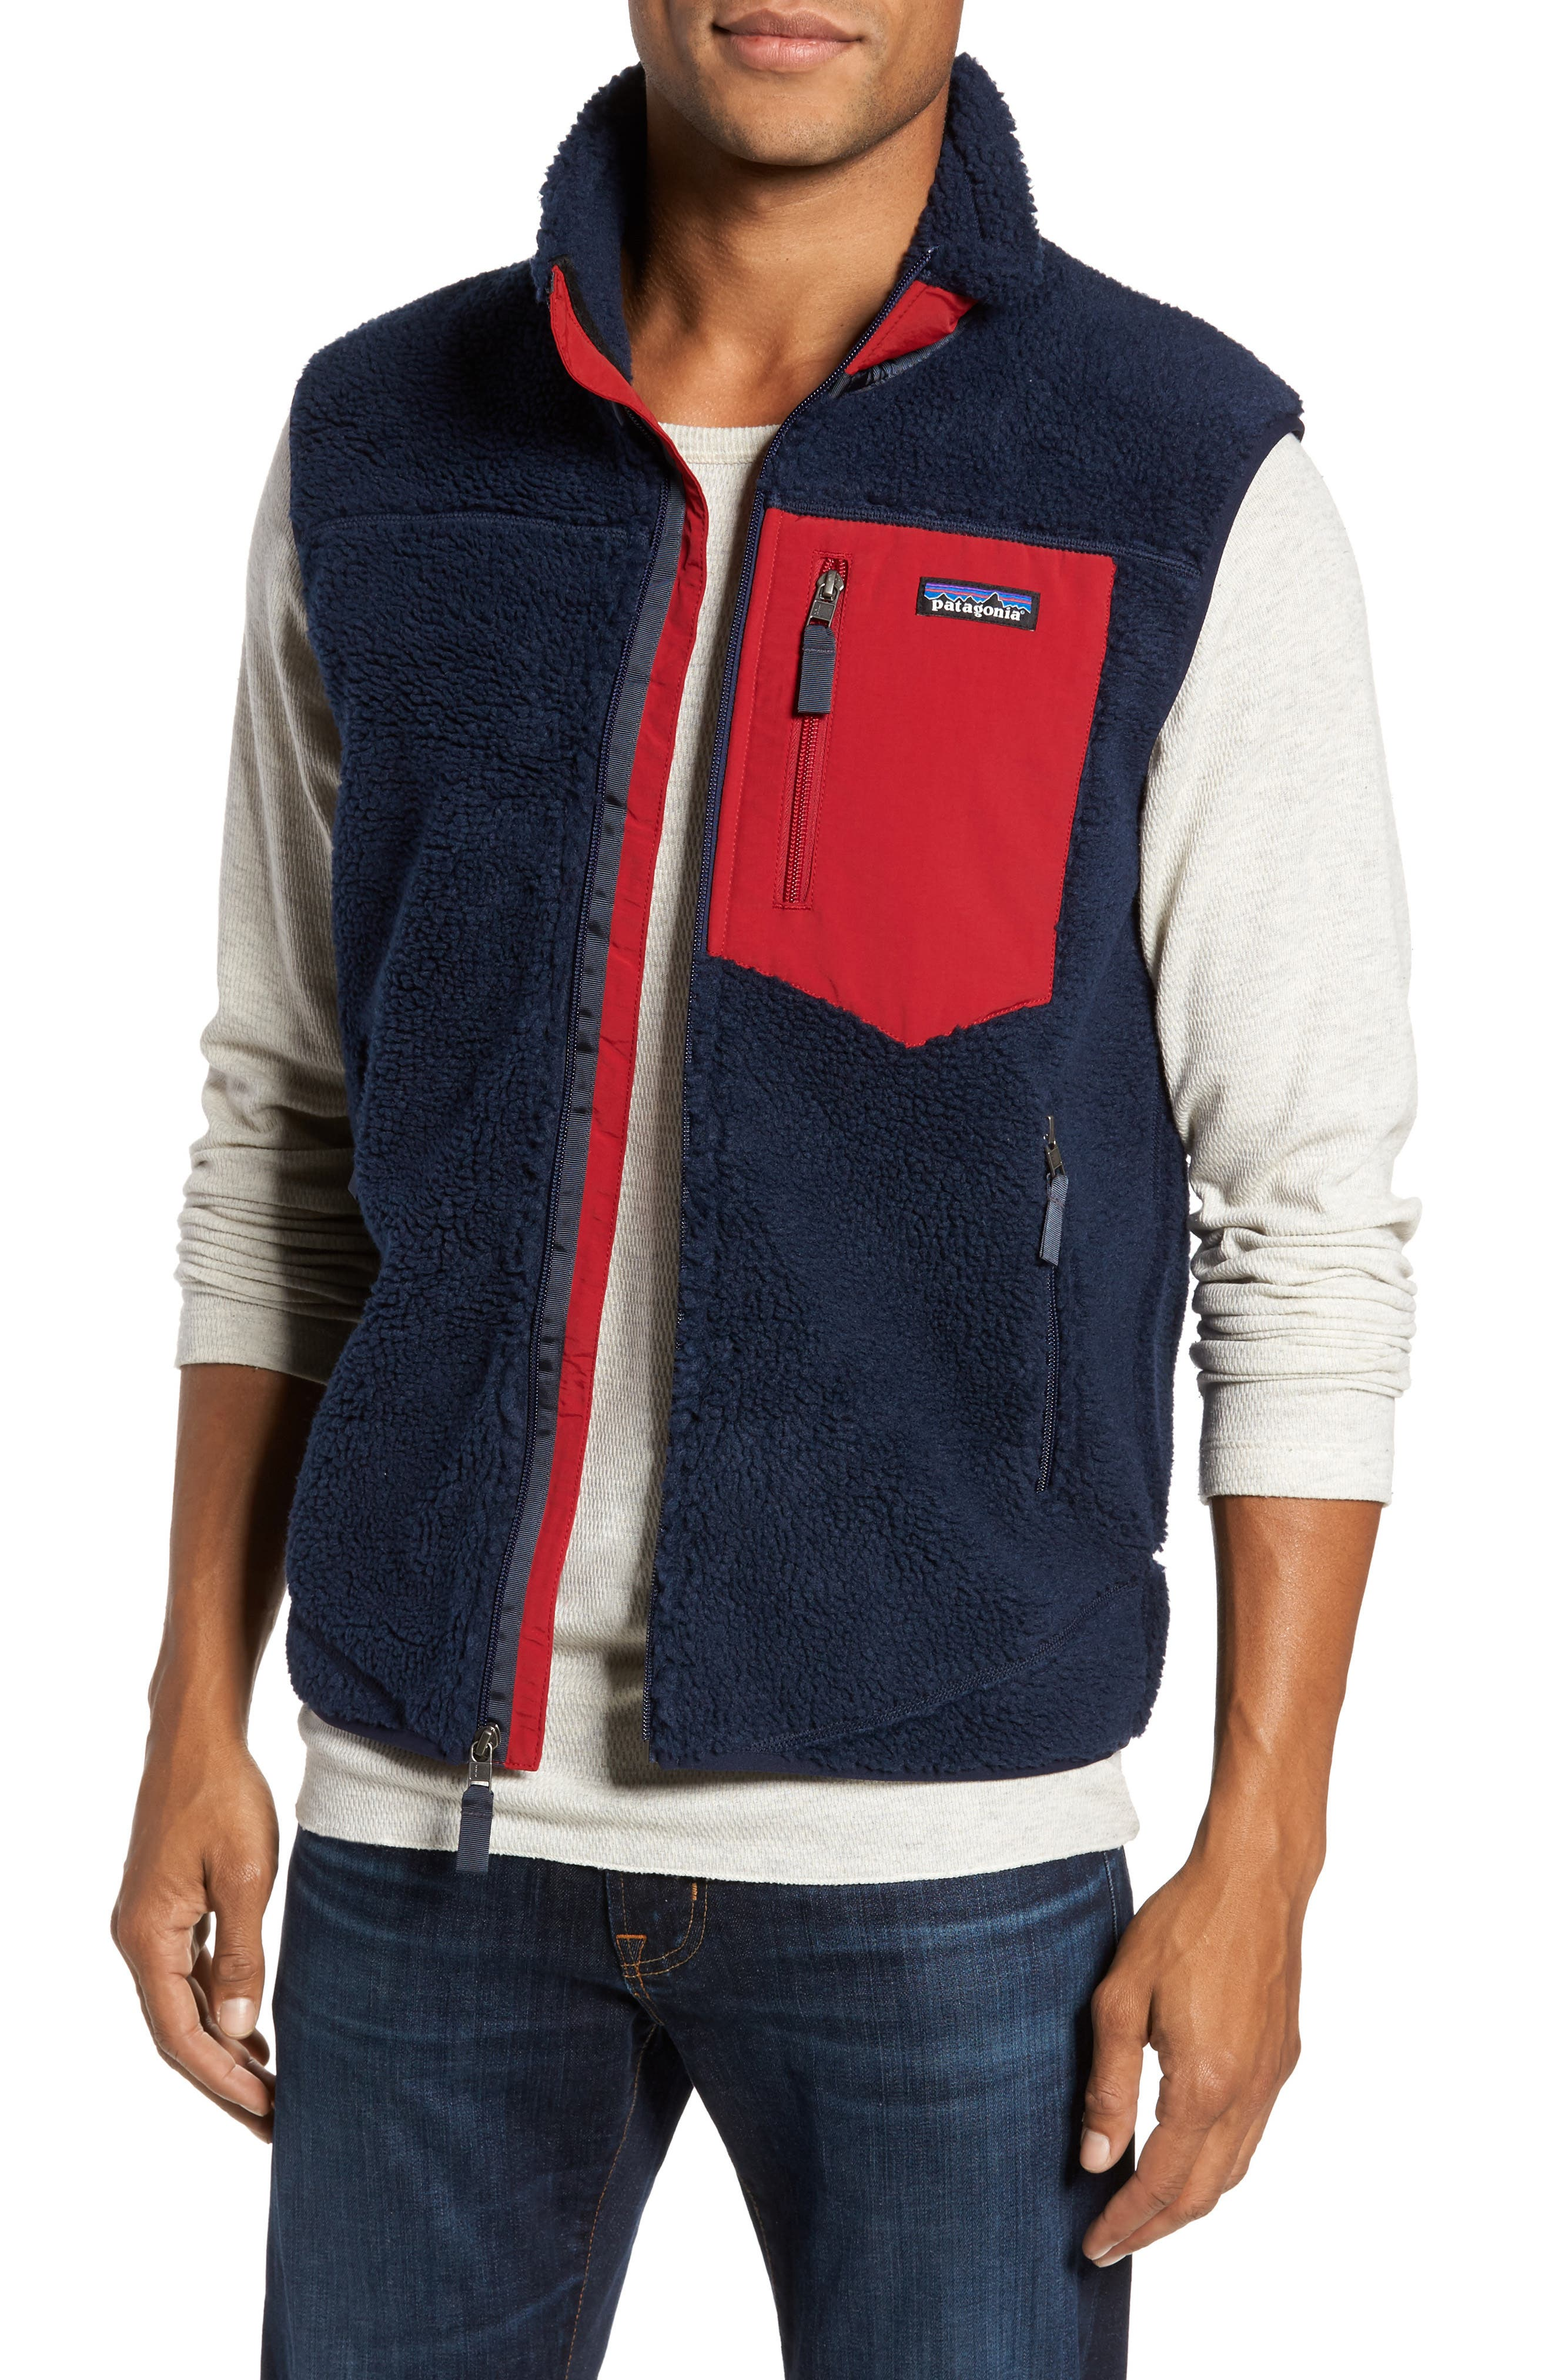 Classic Retro-X<sup>®</sup> Waterproof Vest,                         Main,                         color, Navy Blue W/ Classic Red